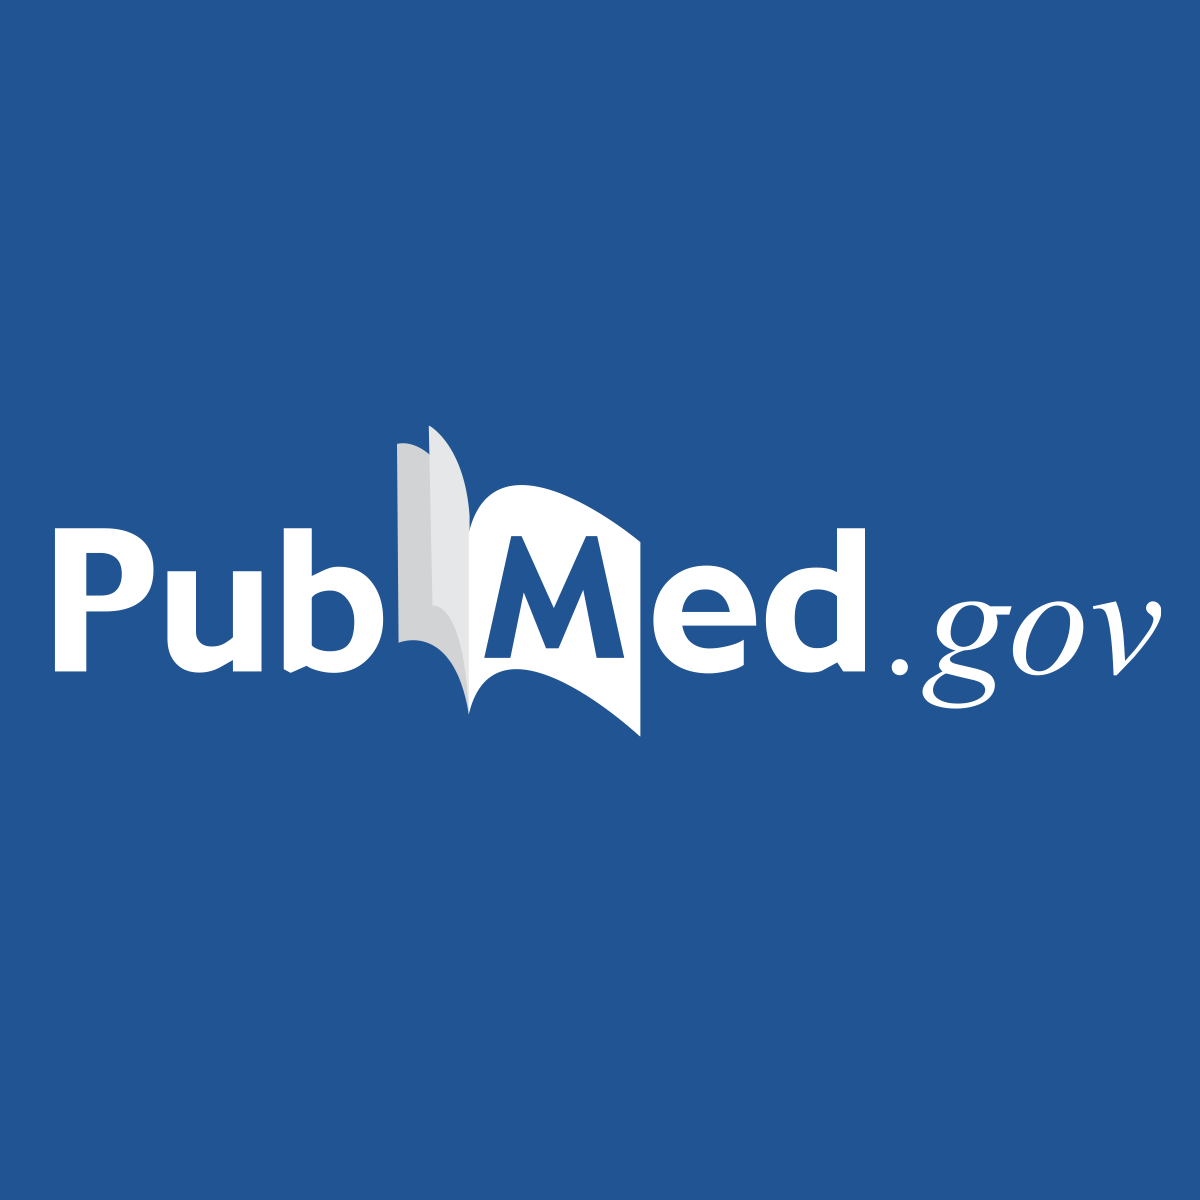 Efficacy and Safety of Renal Denervation for the Management of Arterial Hypertension: A Systematic Review and Meta-Analysis of Randomized, Sham-Controlled, Catheter-Based Trials